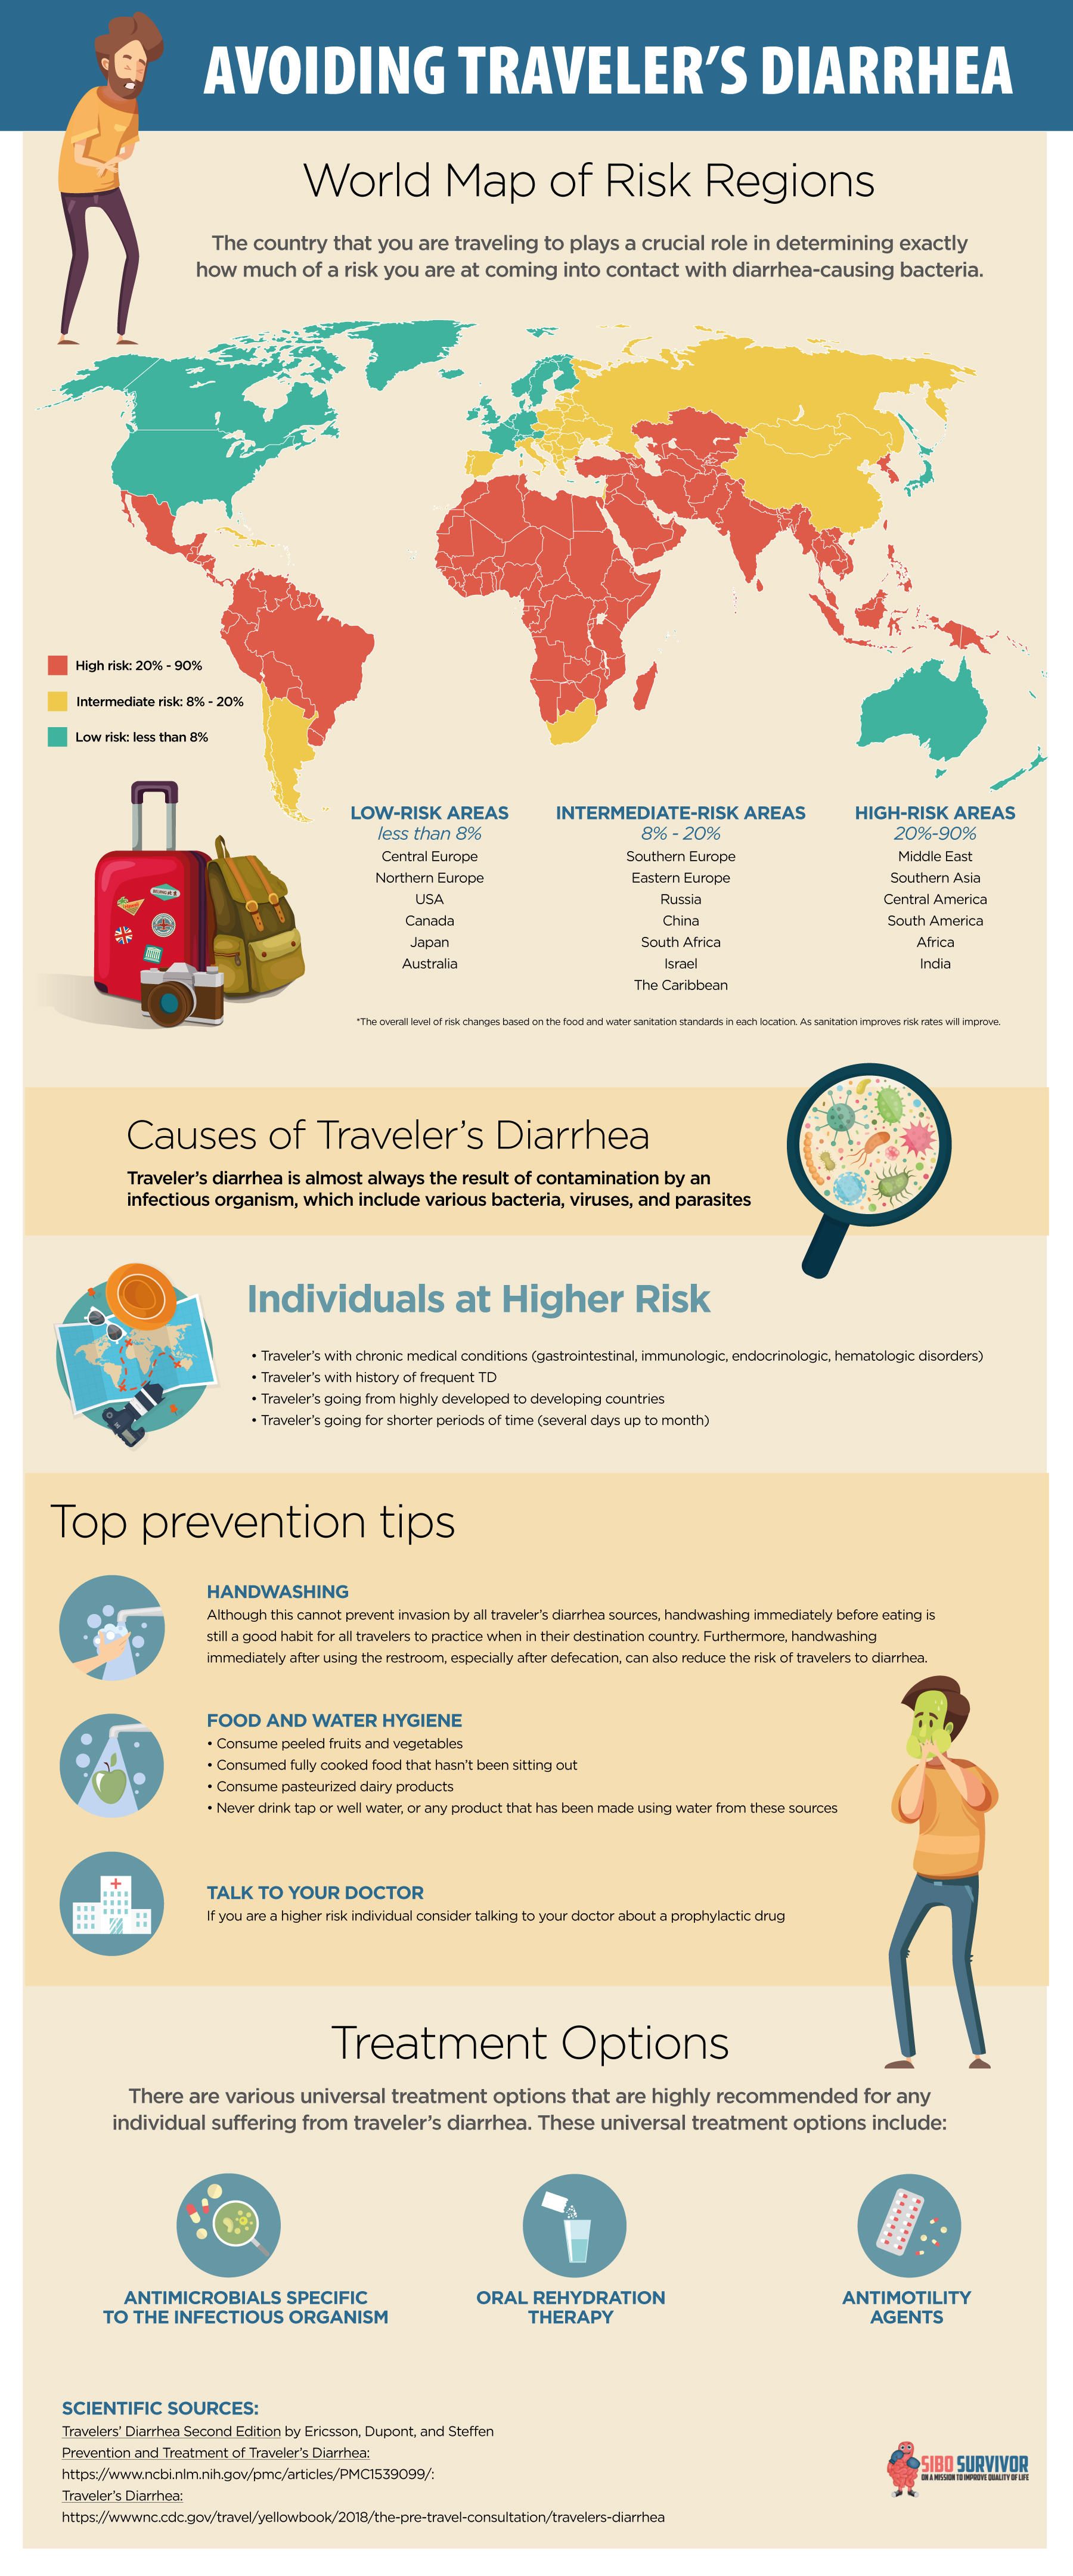 How to avoid travelers diarrhea